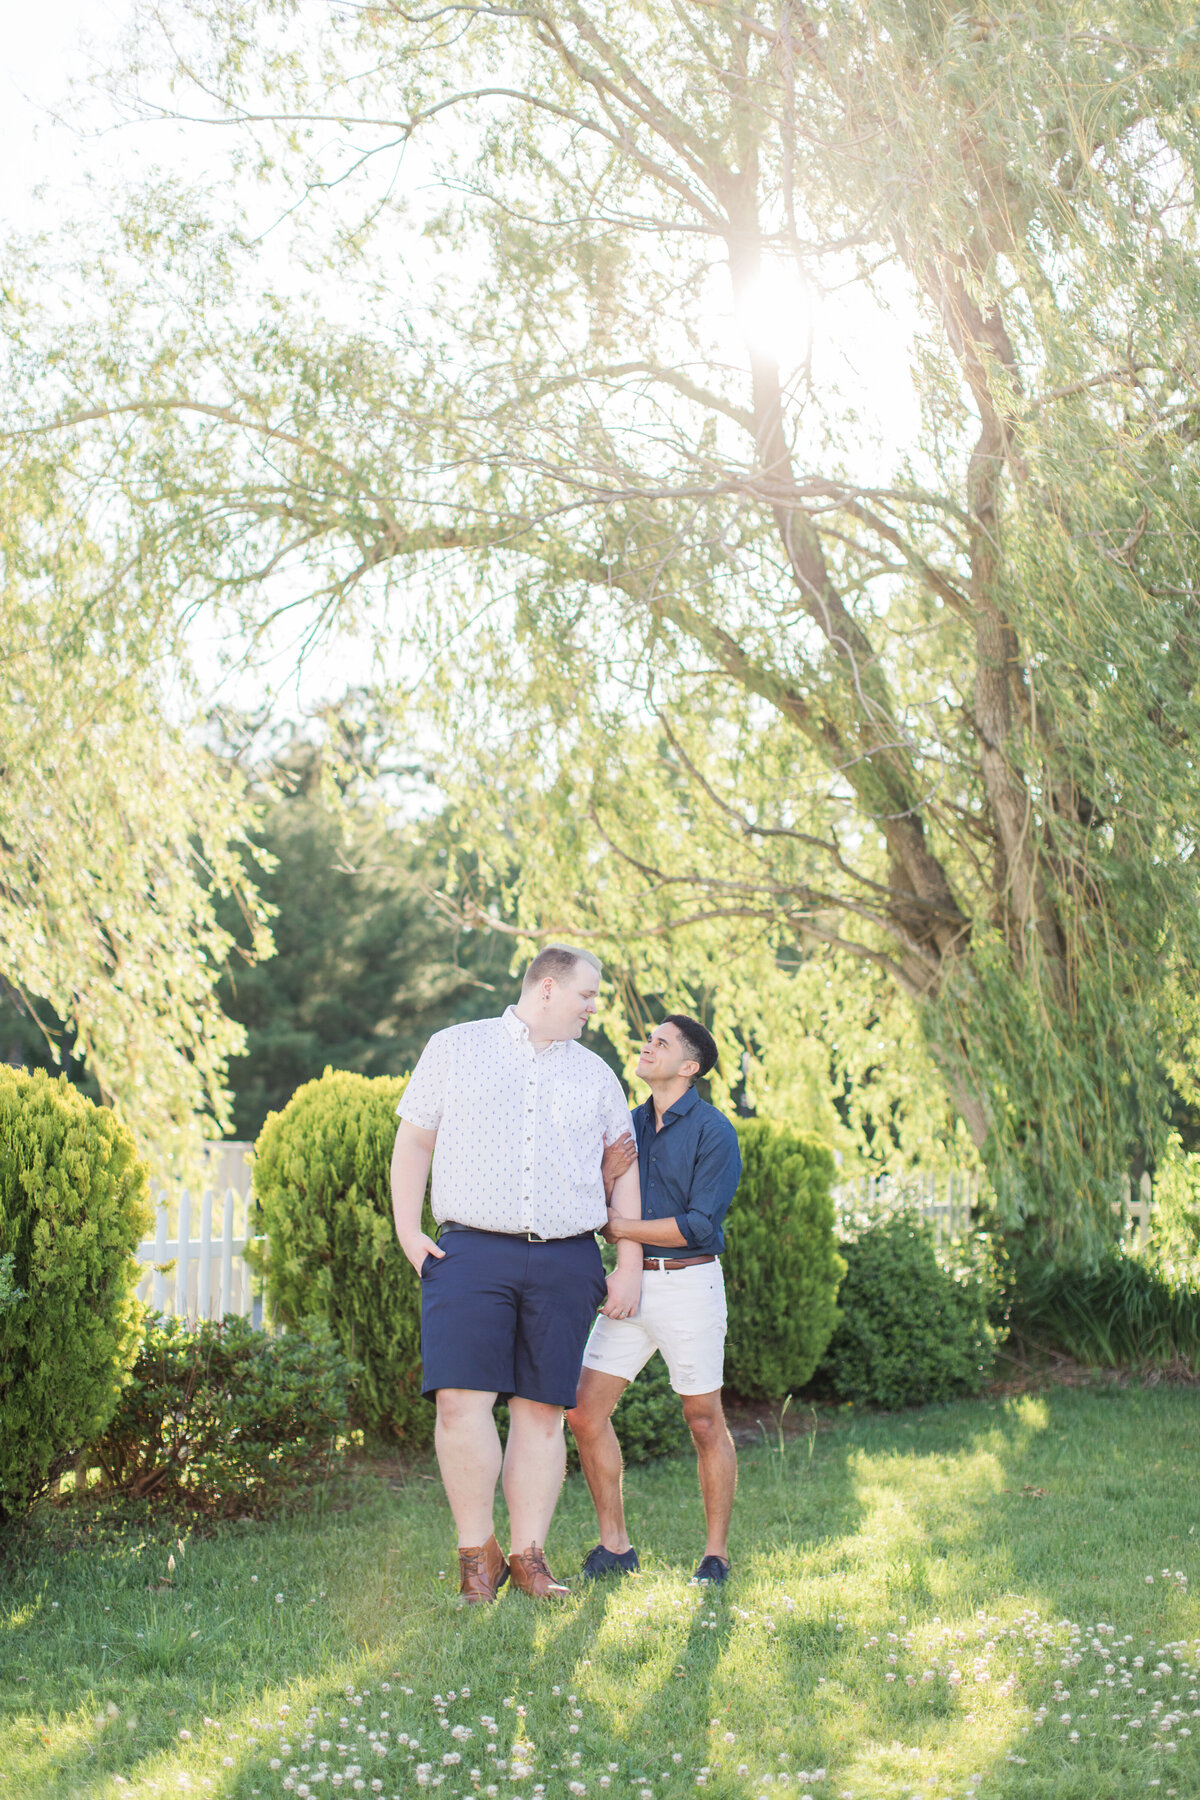 LGBTQ_Engagement_Session_Renault_Winery_Galloway_New_Jersey-14